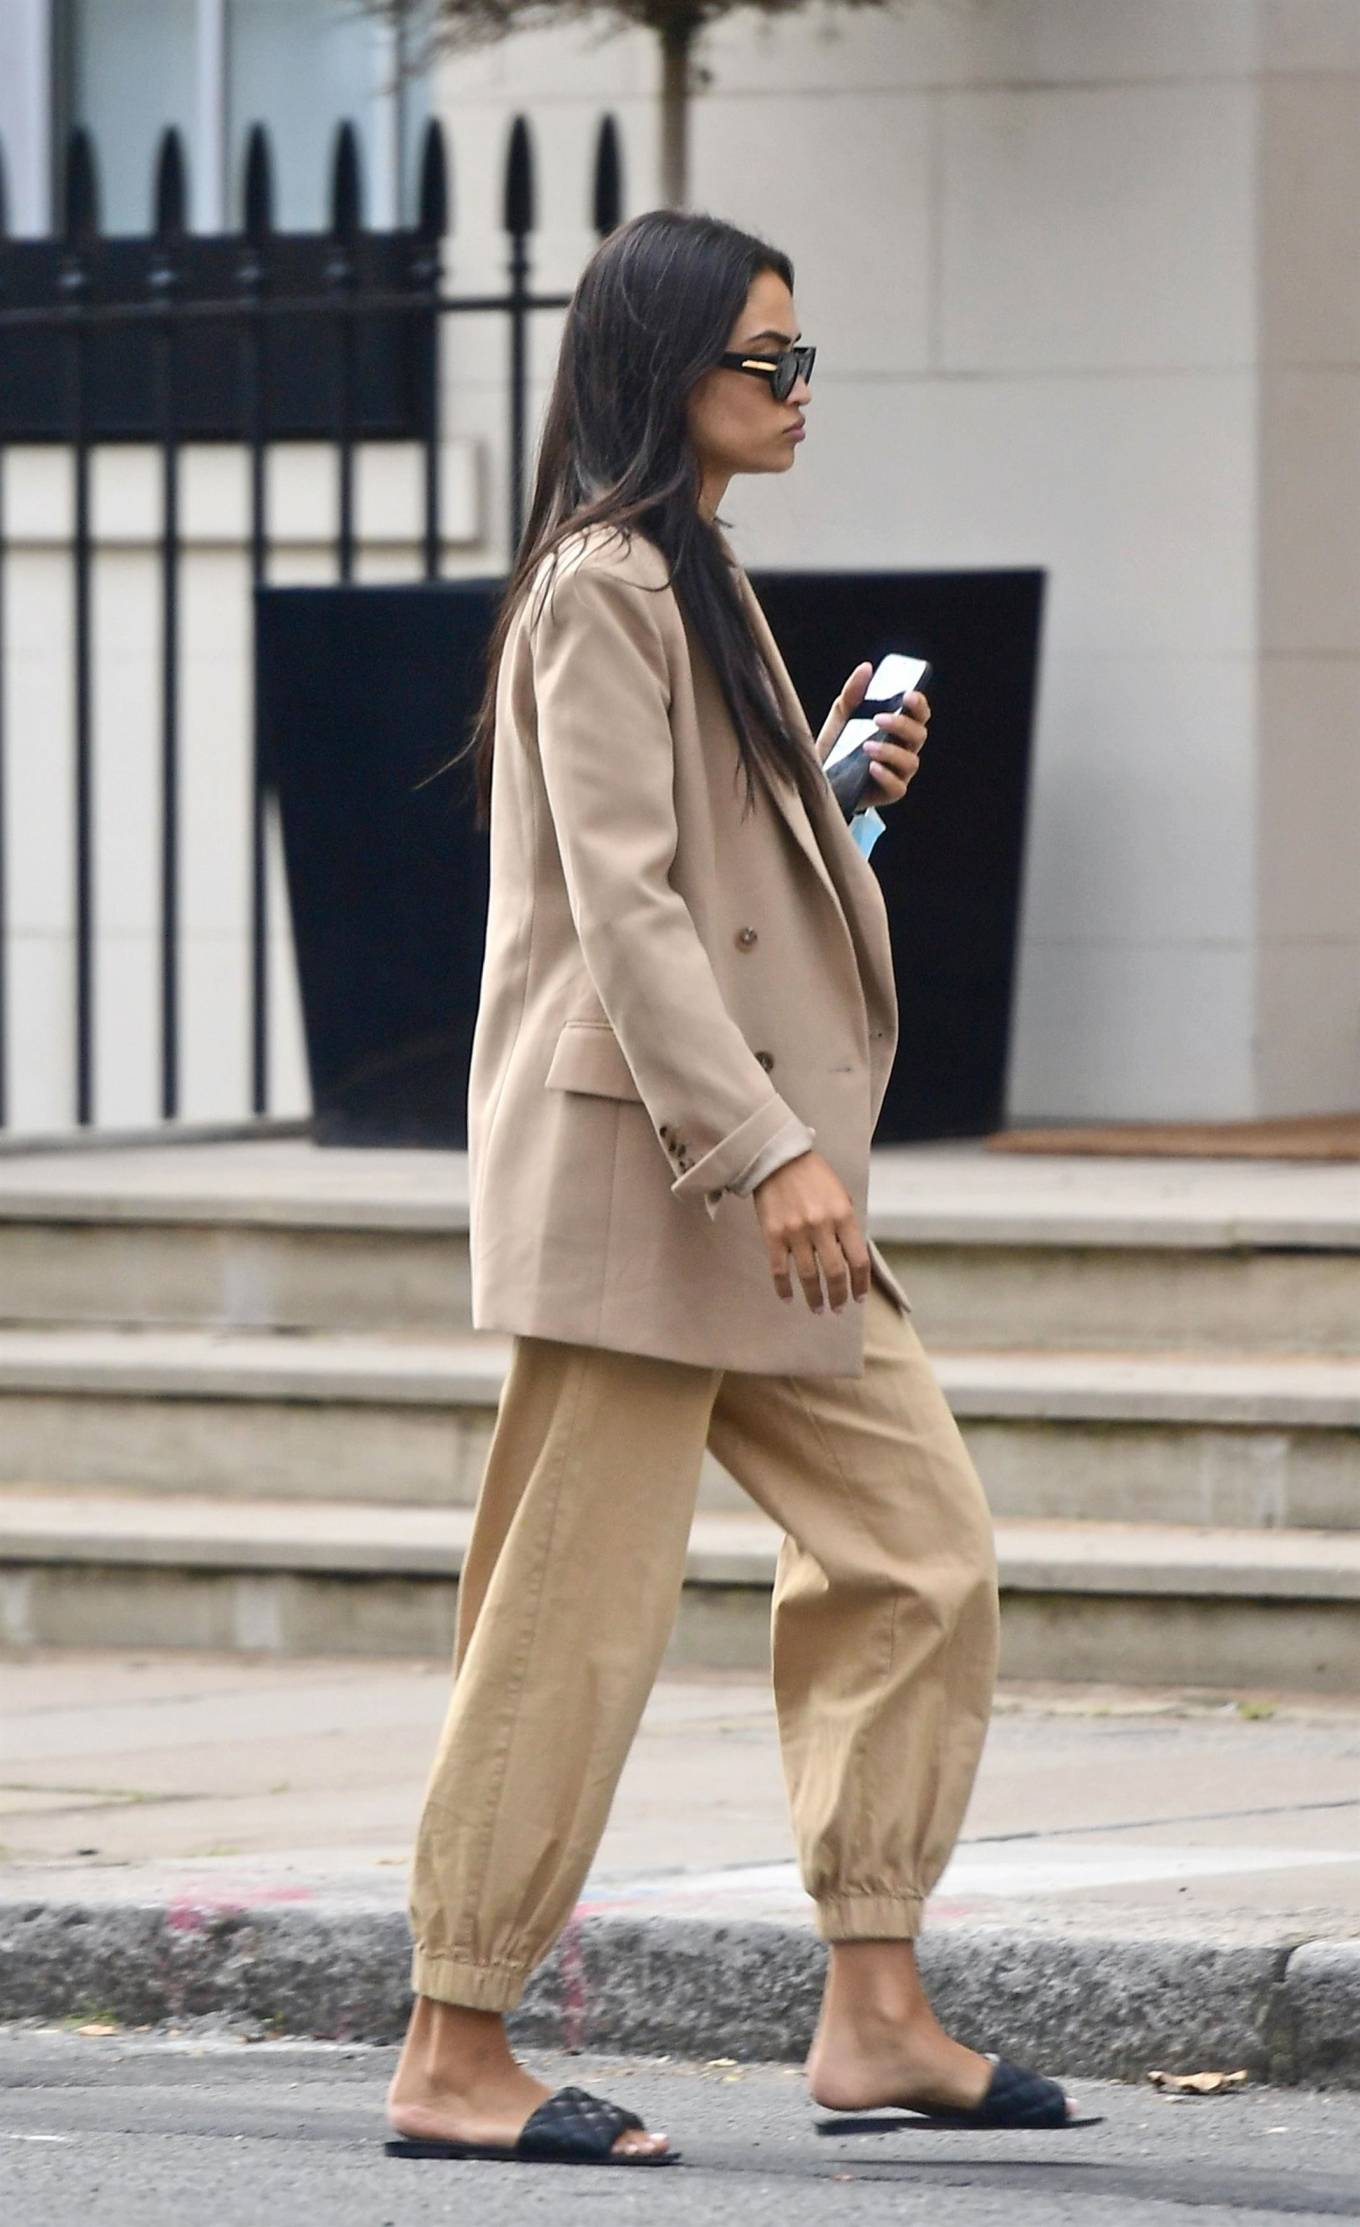 Shanina Shaik 2020 : Shanina Shaik – Stylish in her beige trousers and jacket while out in London-05